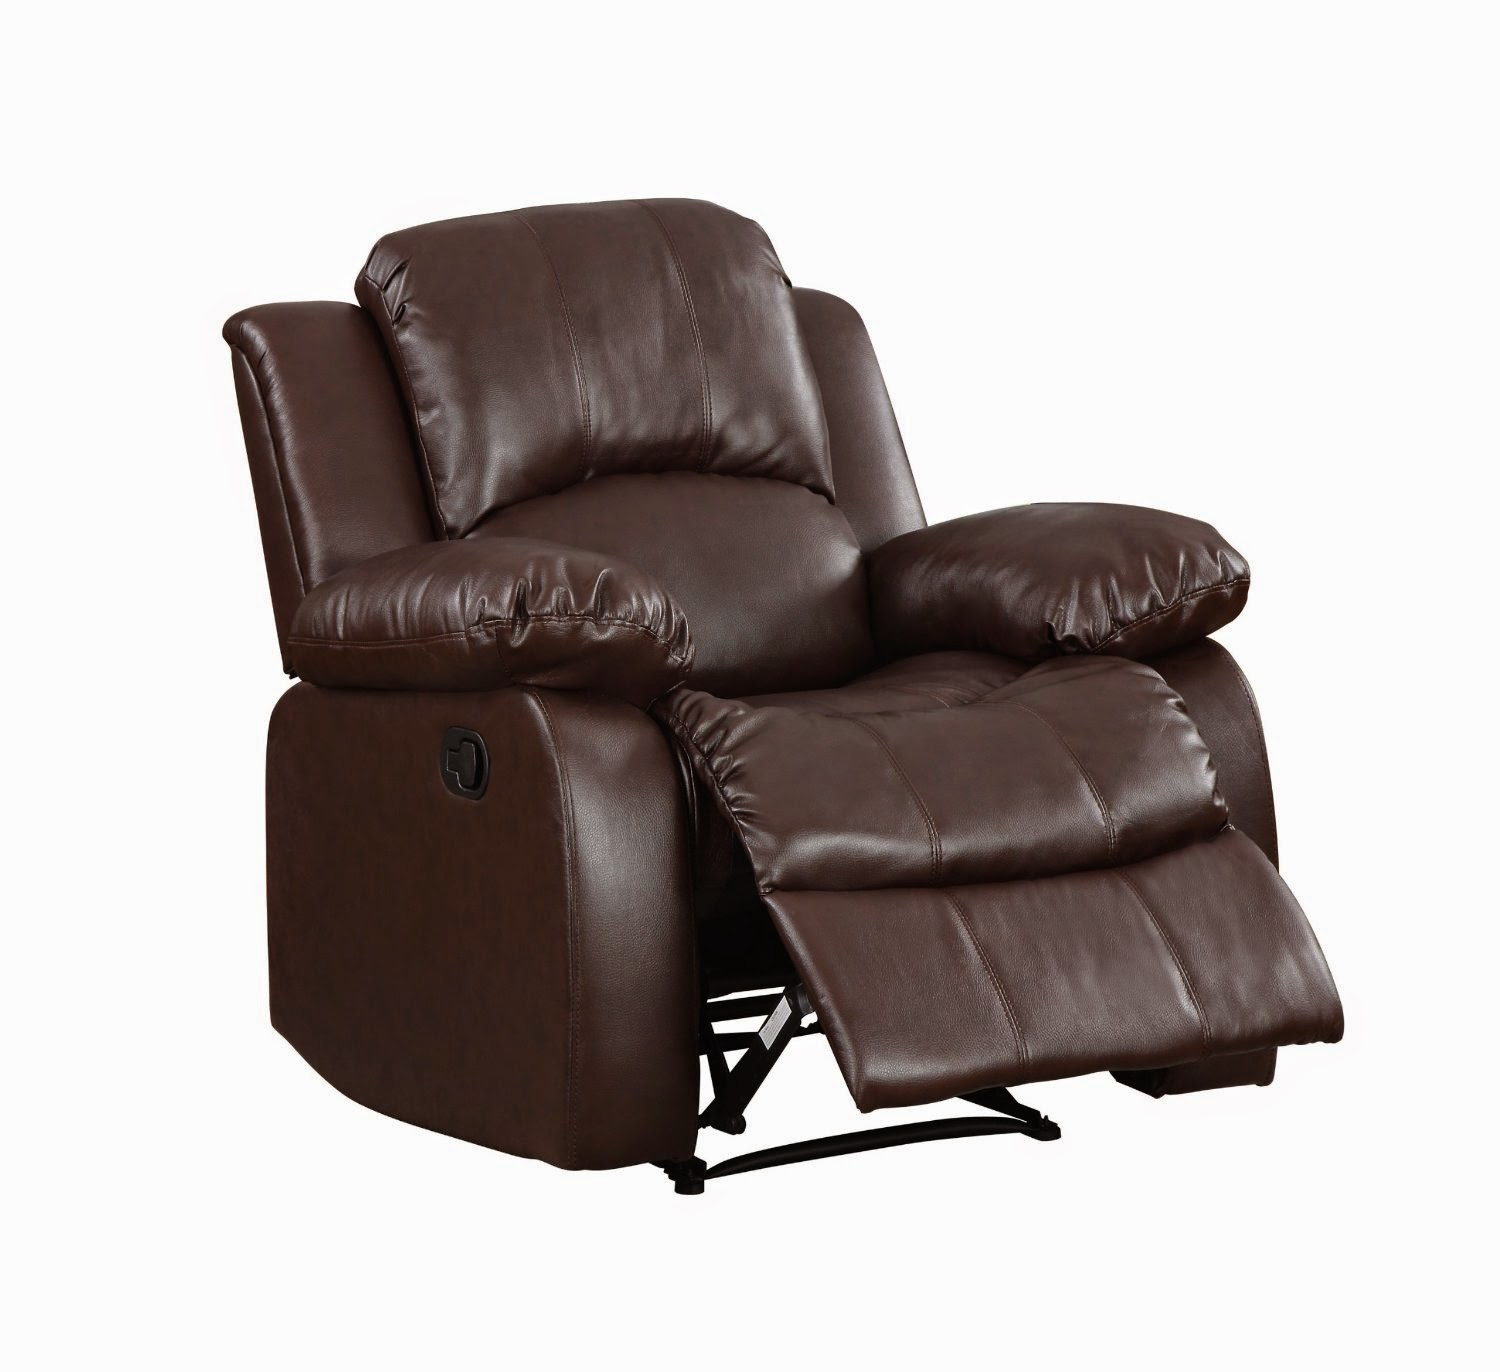 Best Leather Reclining Sofa Brands Reviews: Costco Leather